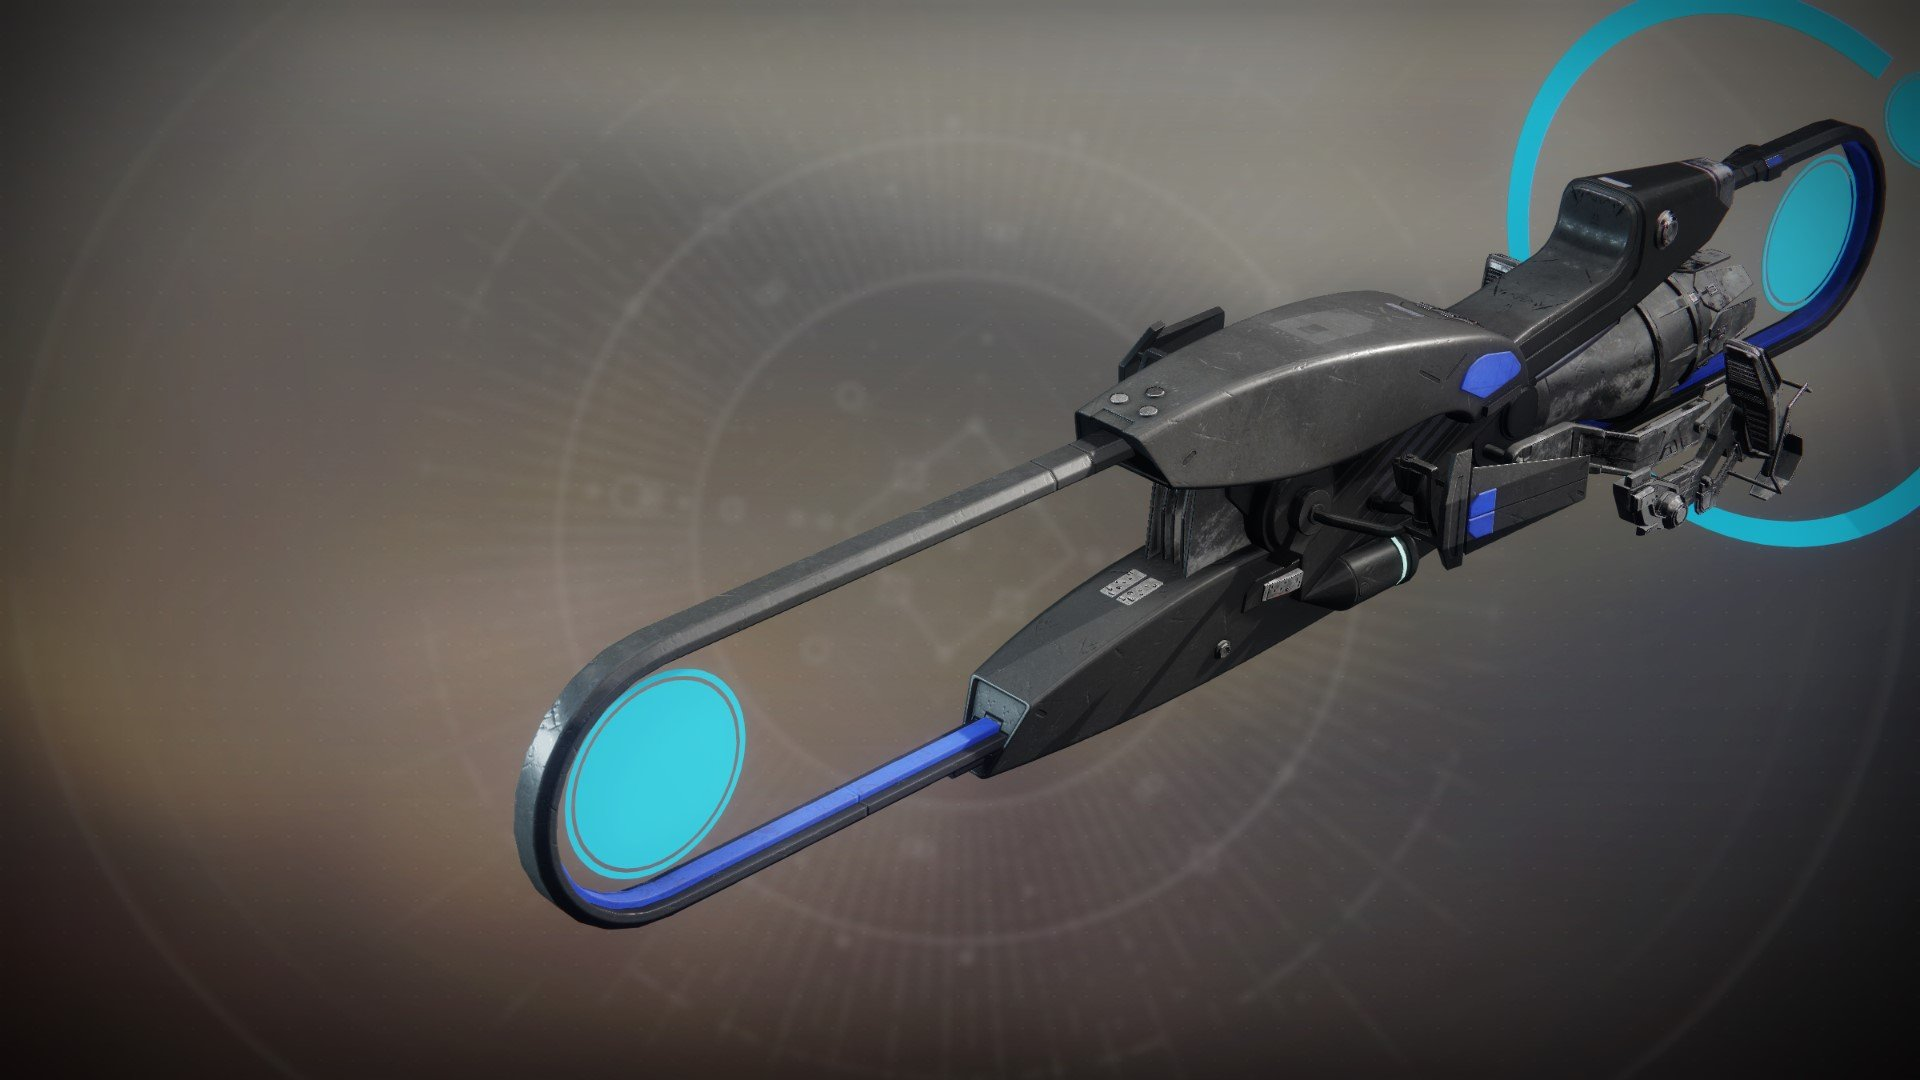 An in-game render of the Photocycle.